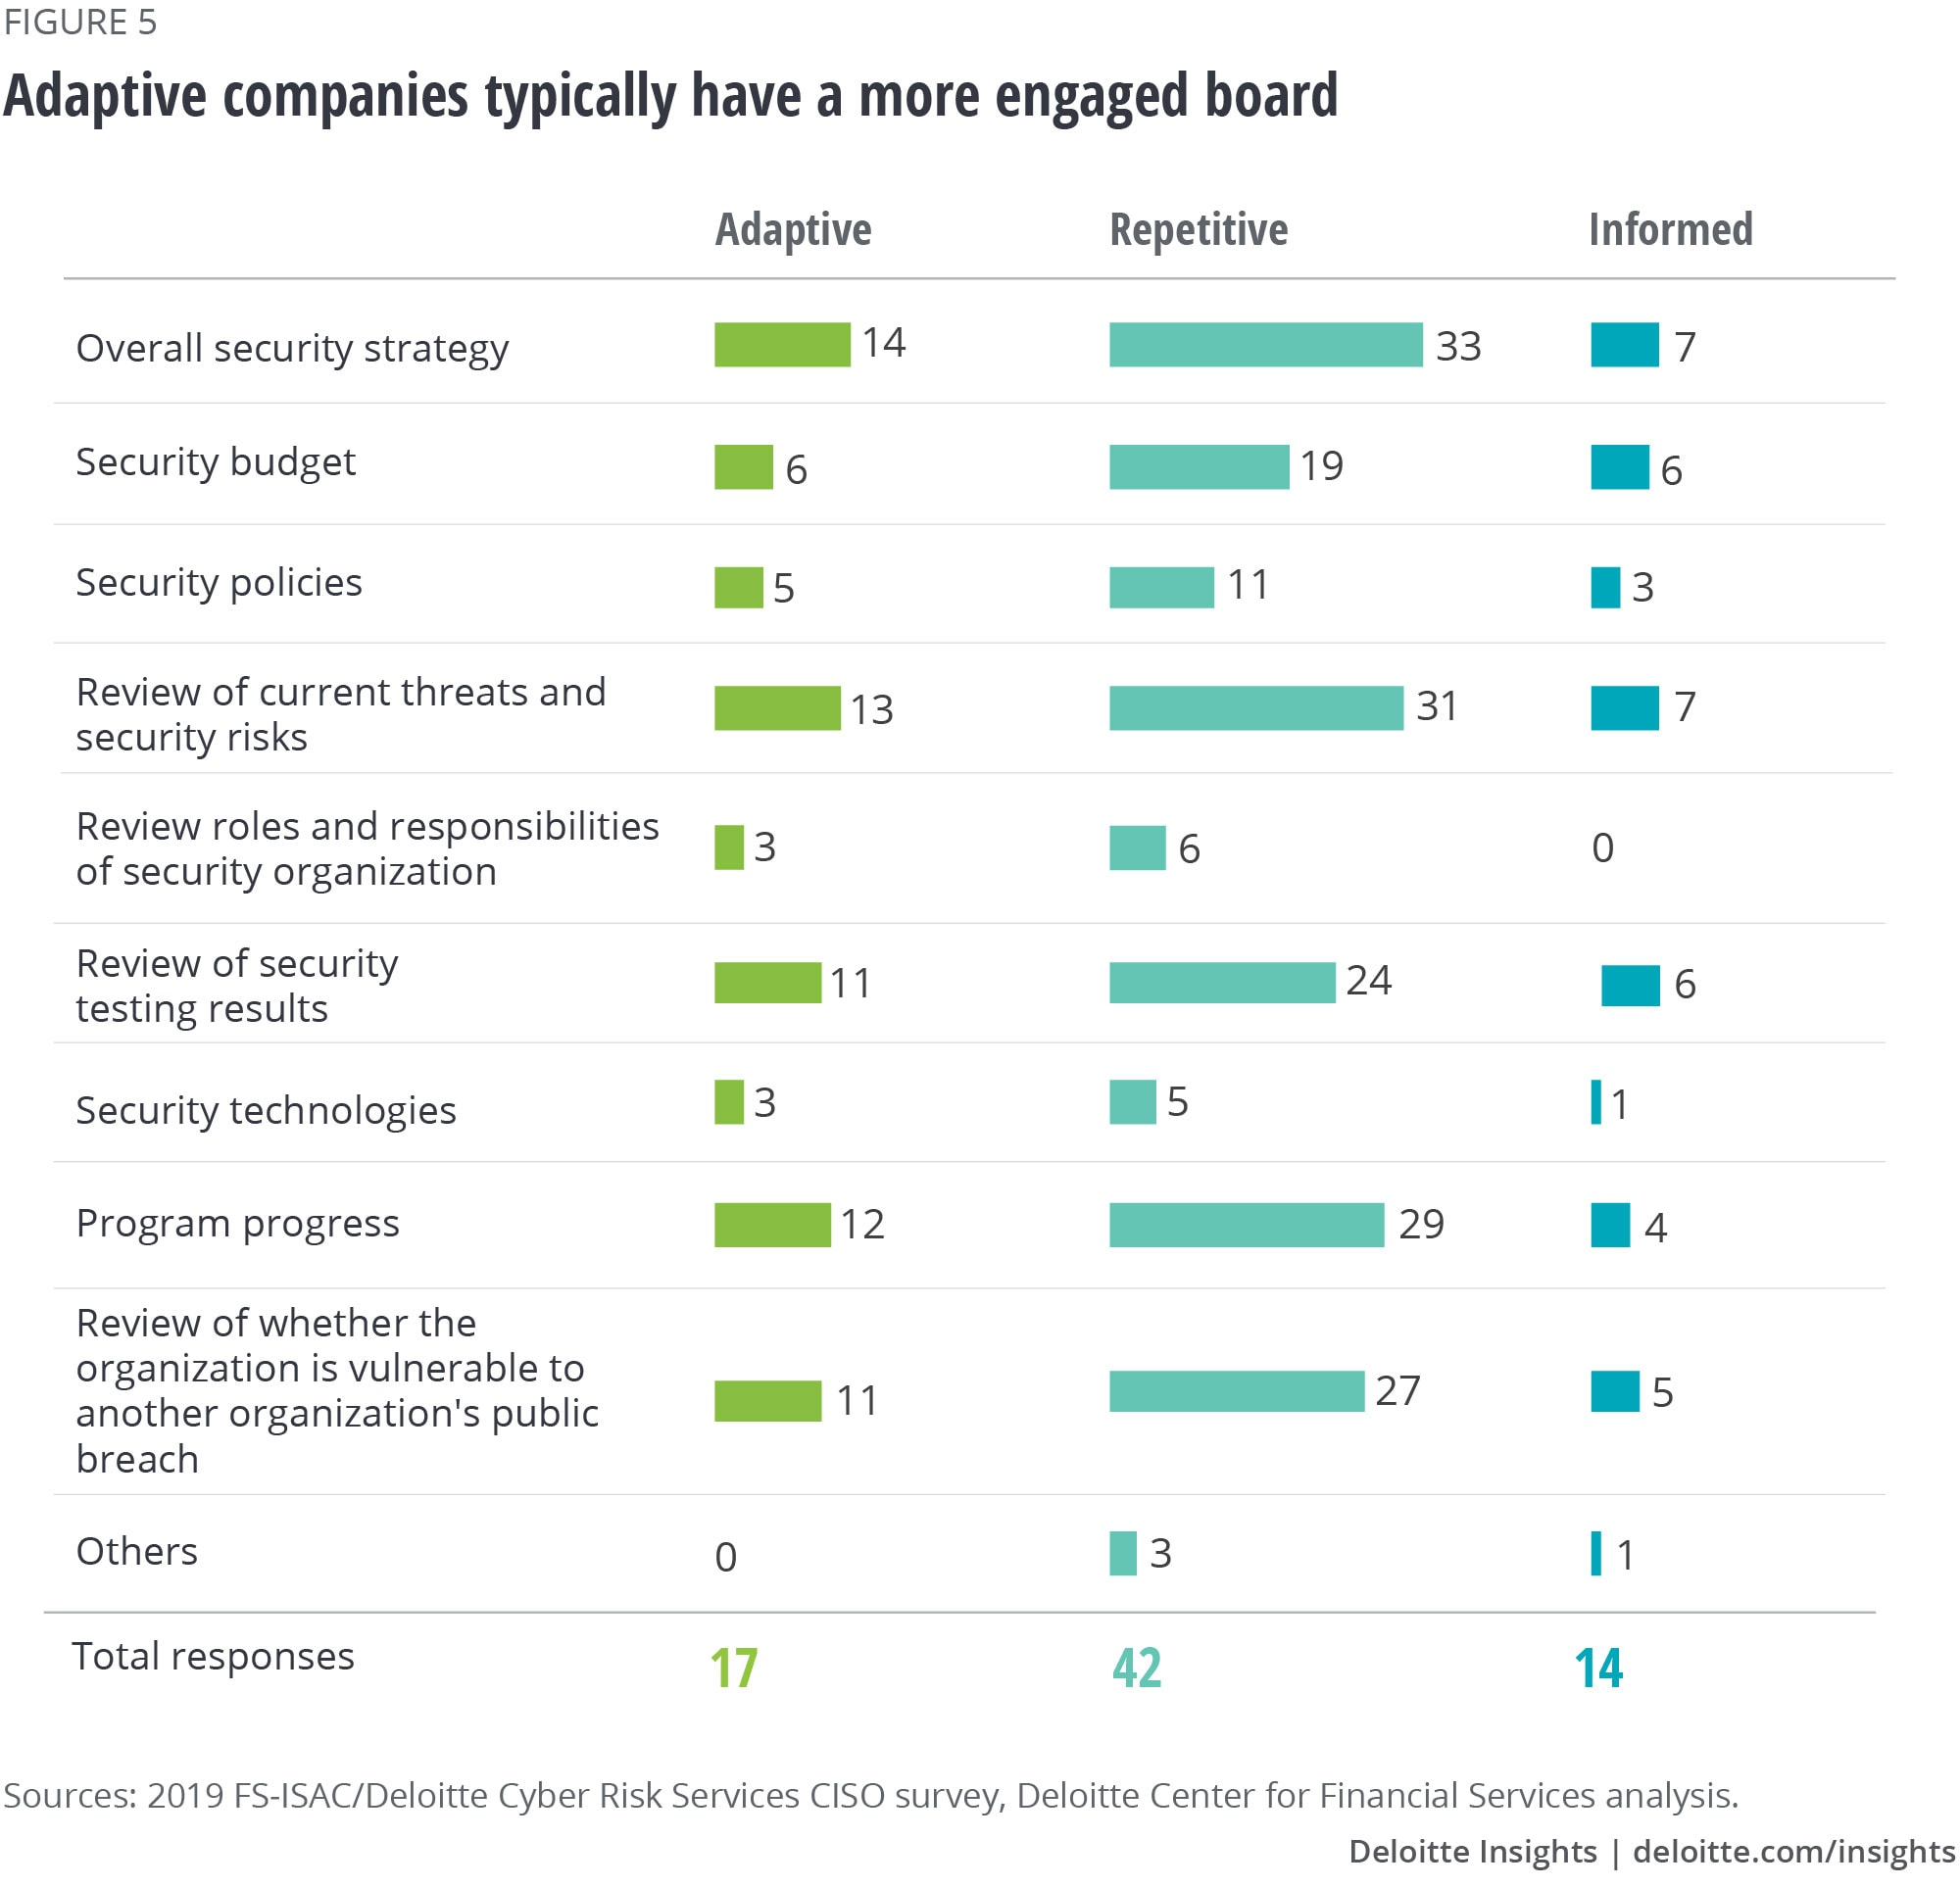 Adaptive companies typically have a more engaged board